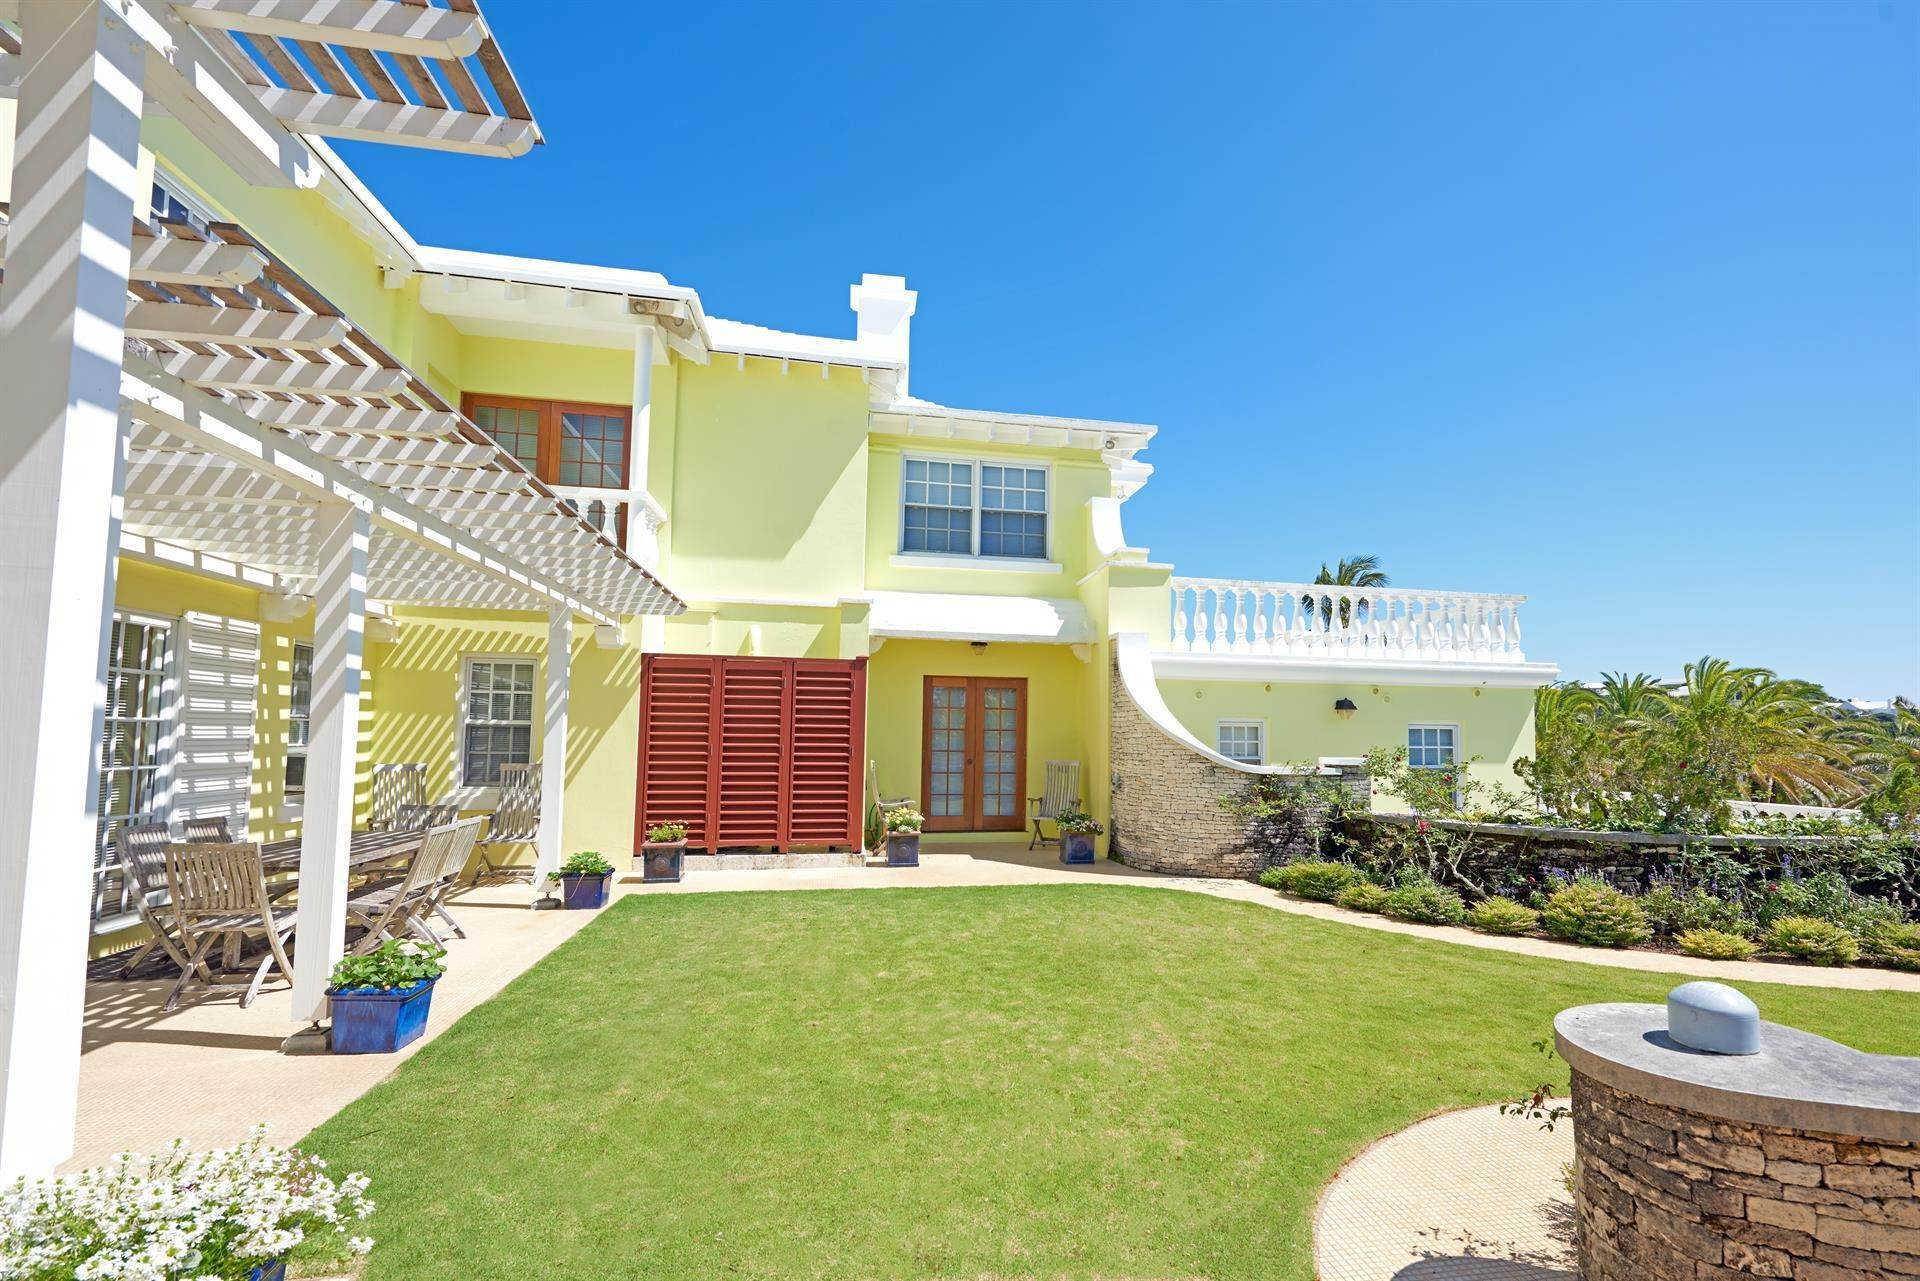 7. Propriedade do Waterfront para Venda às Palomera In Fairylands Palomera In Fairylands, 7 Mills Shares Road,Bermuda – Sinclair Realty